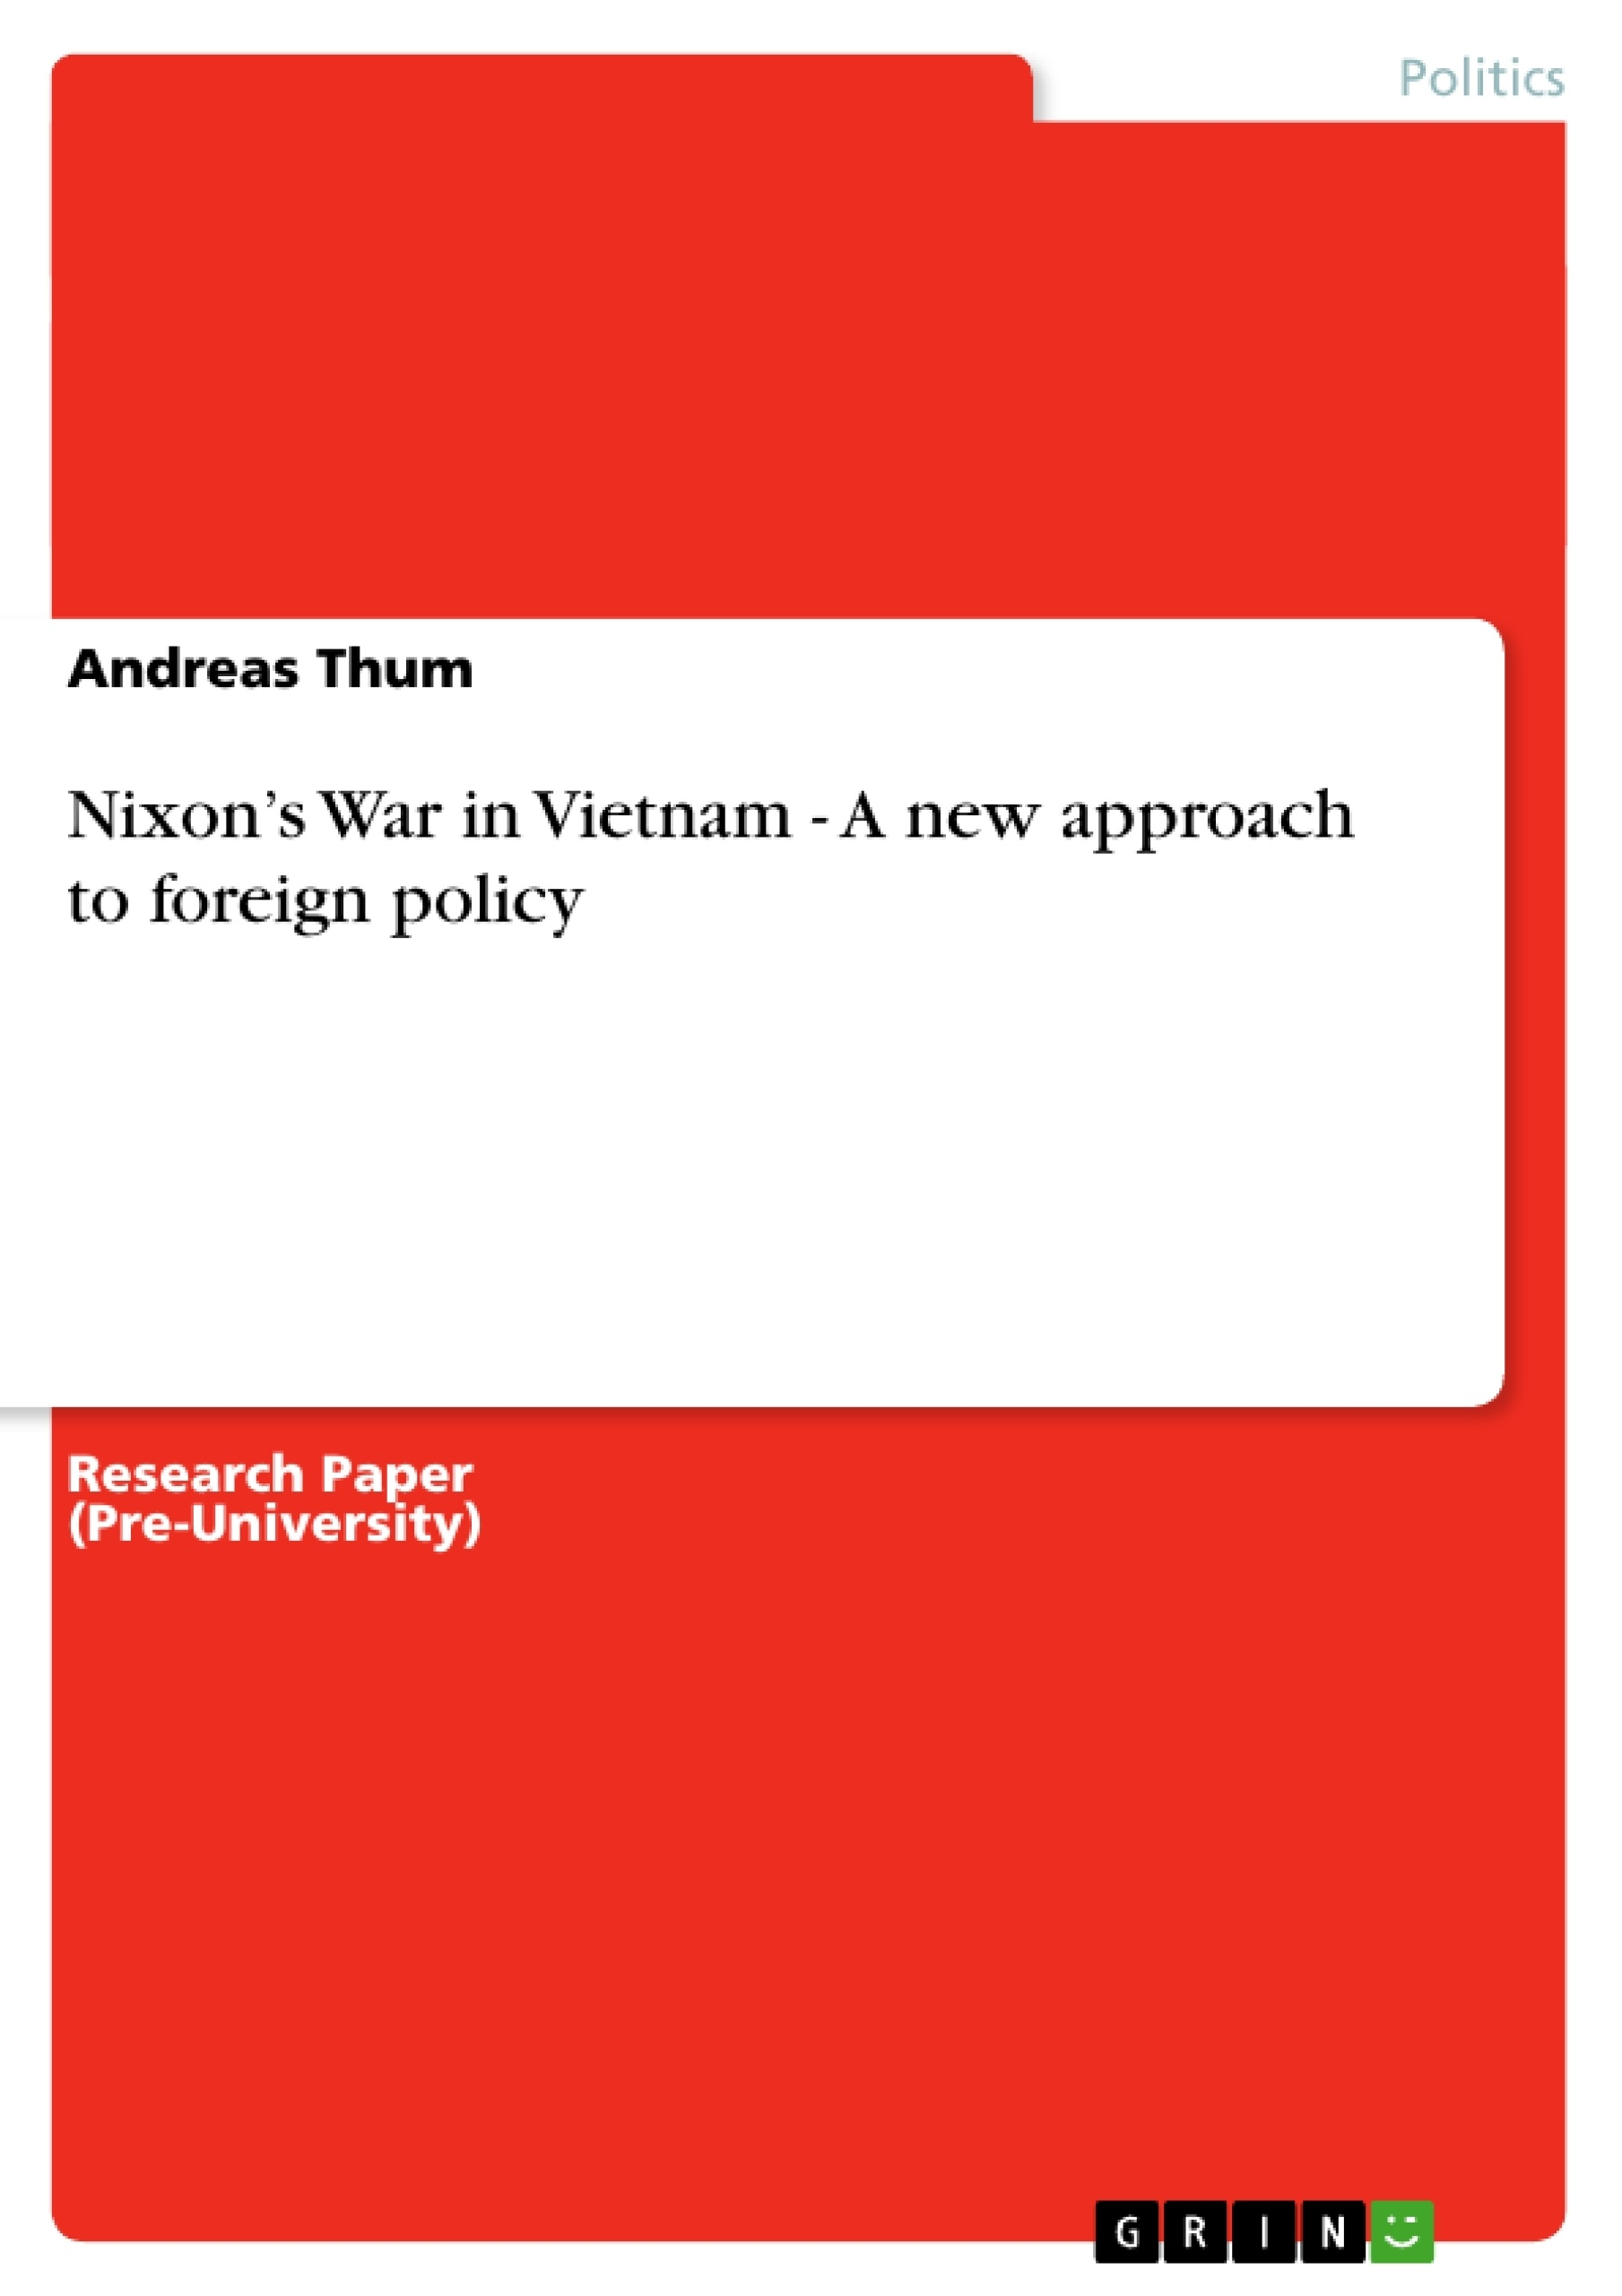 Title: Nixon's War in Vietnam - A new approach to foreign policy